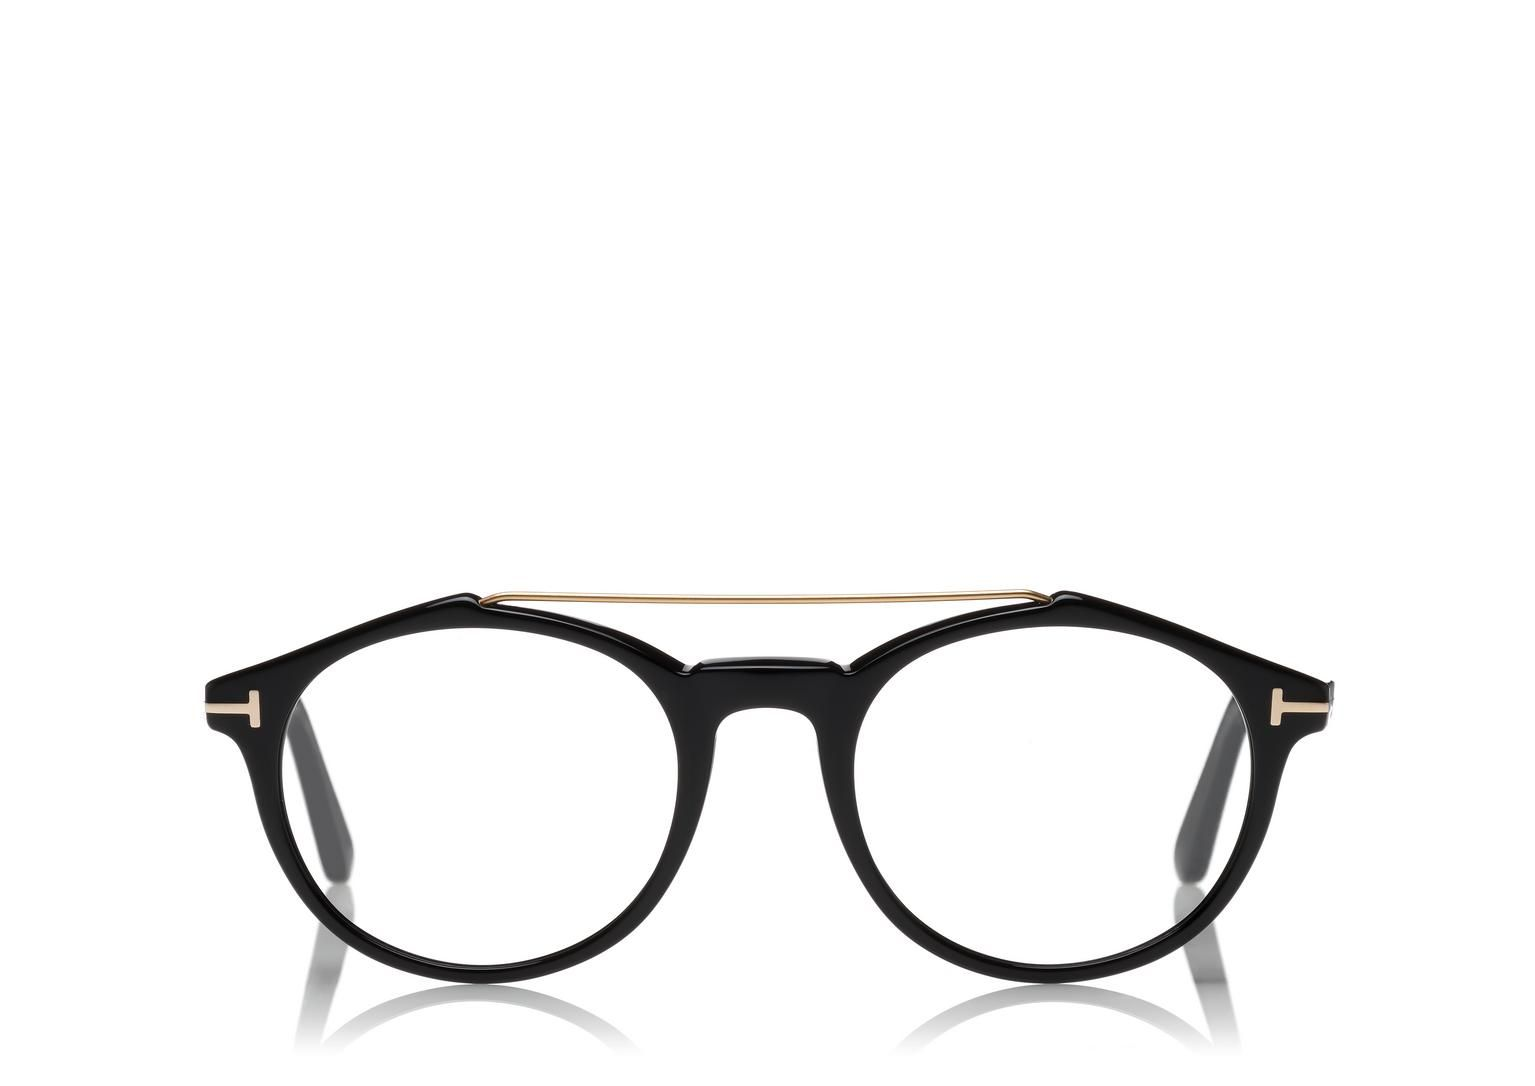 b87deedf48a ROUND OPTICAL FRAME WITH BROW BAR